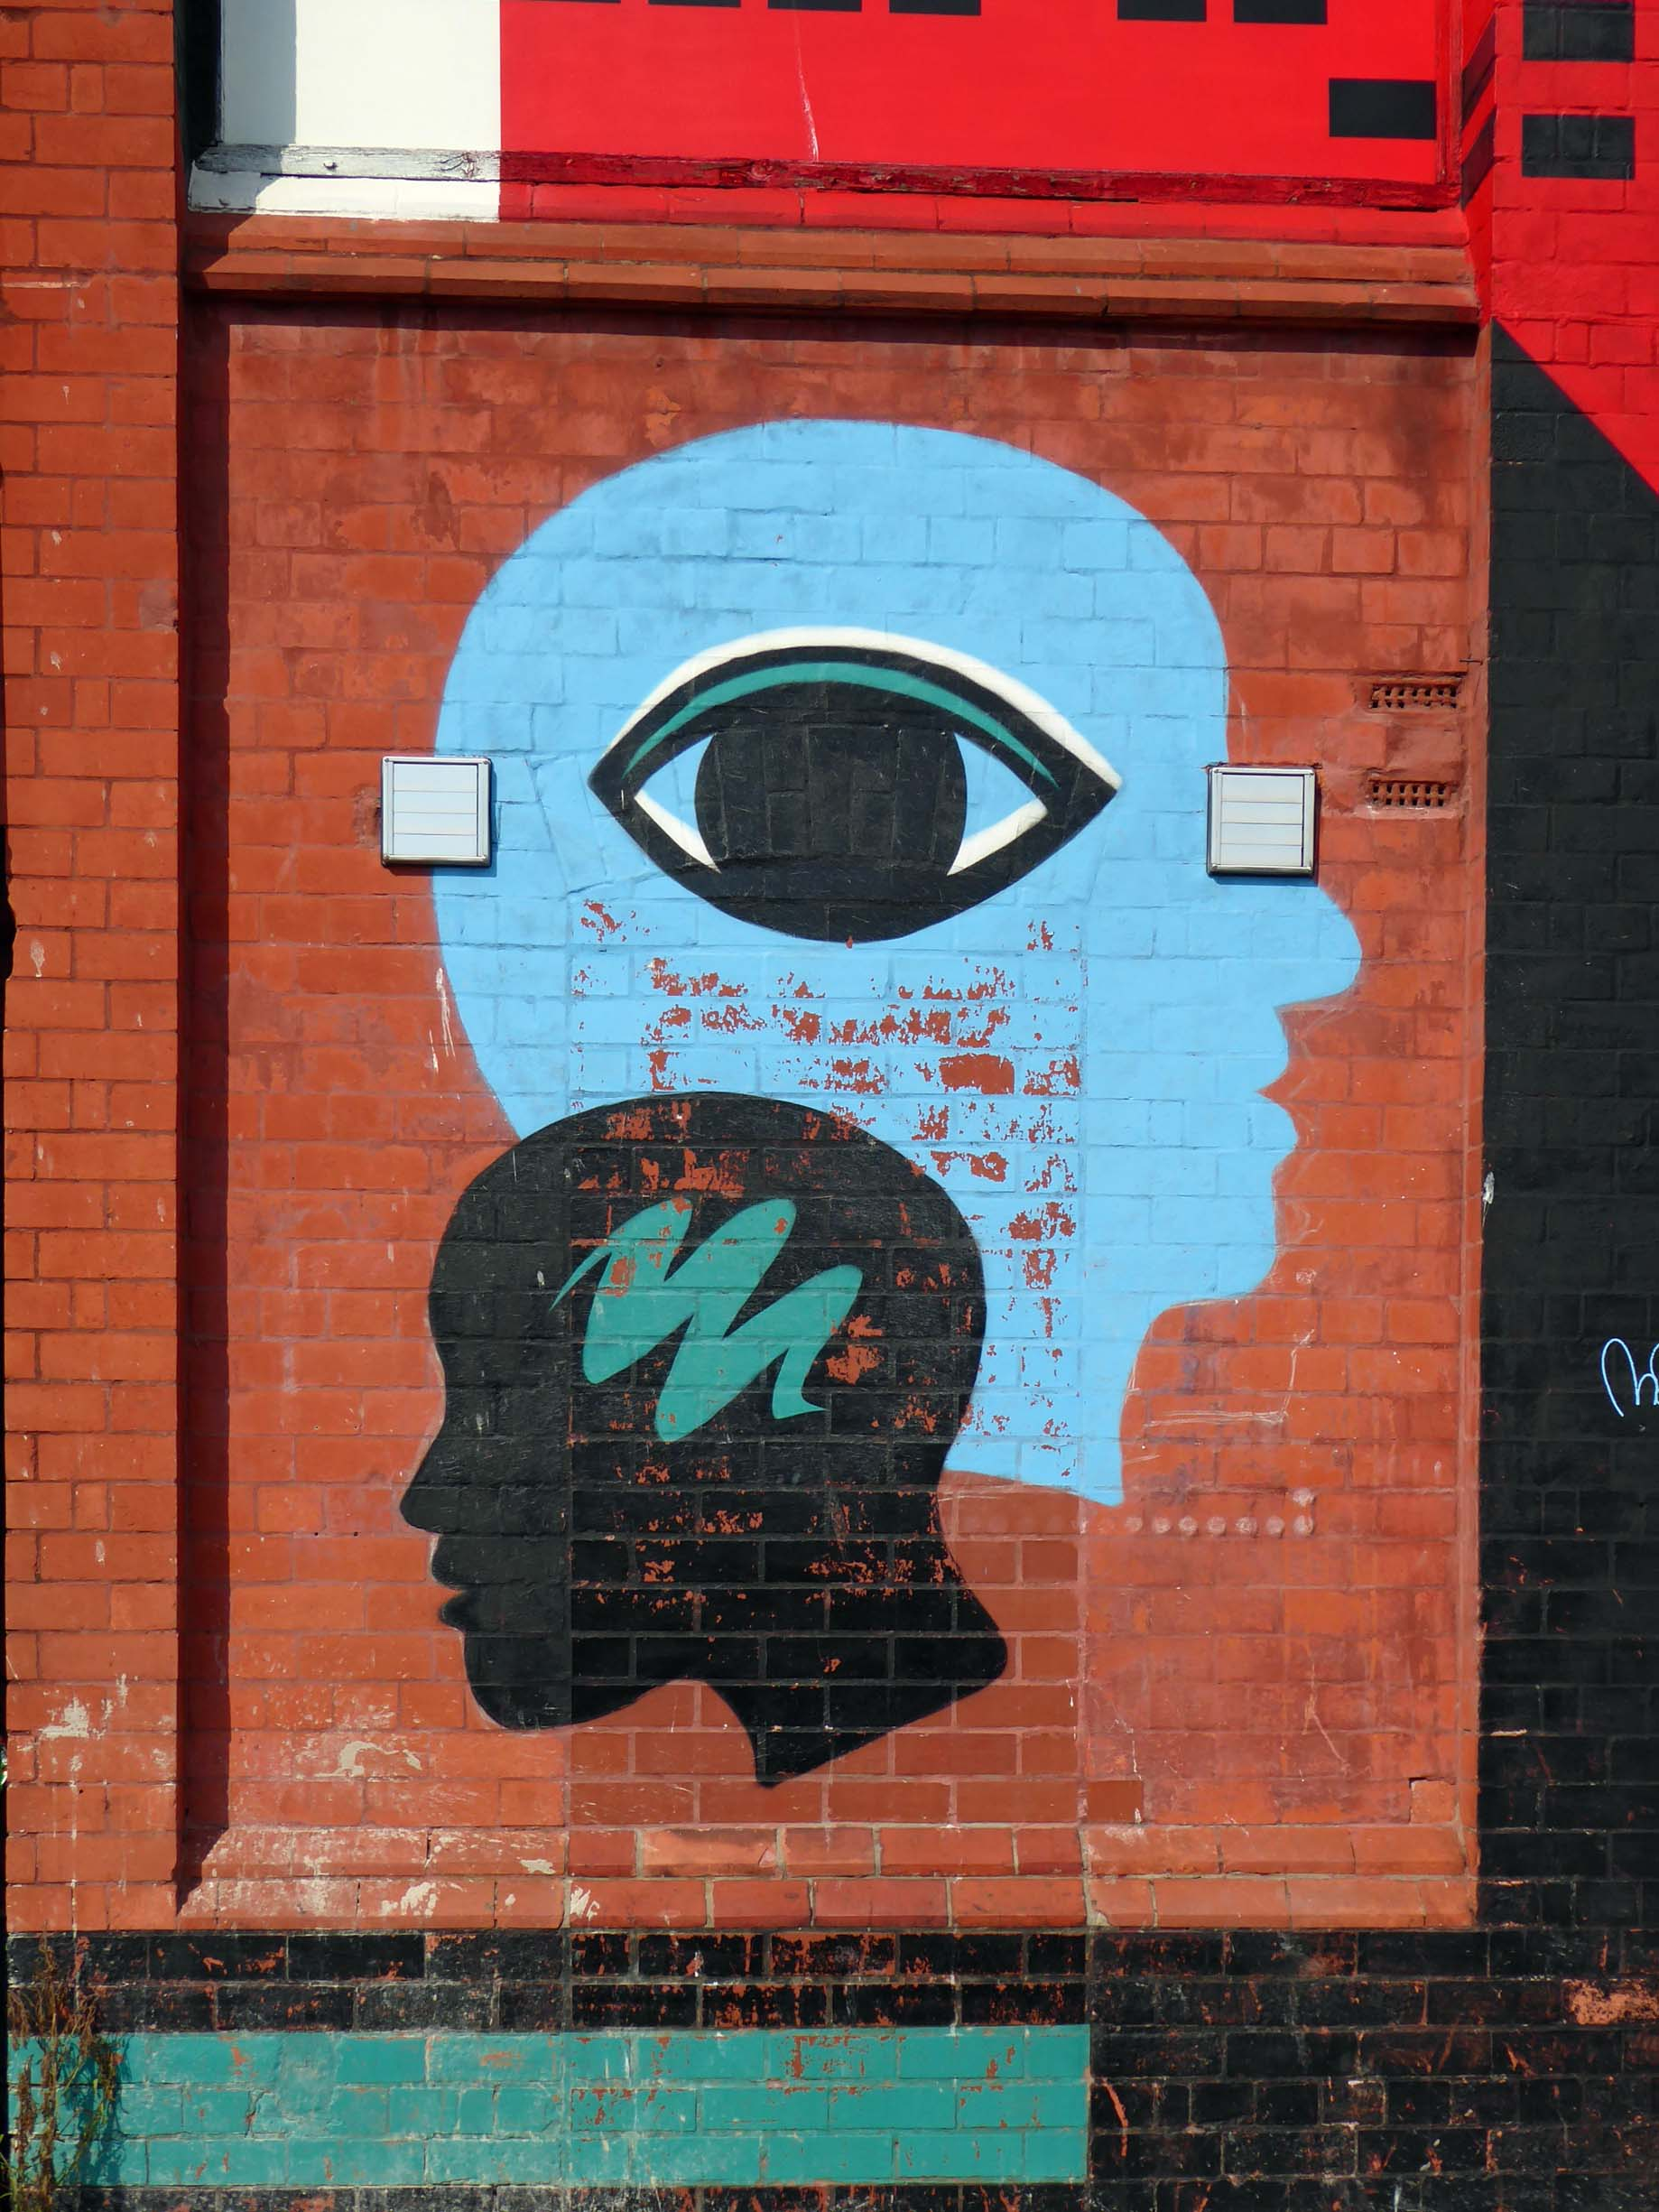 Mural of two heads looking in opposite directions